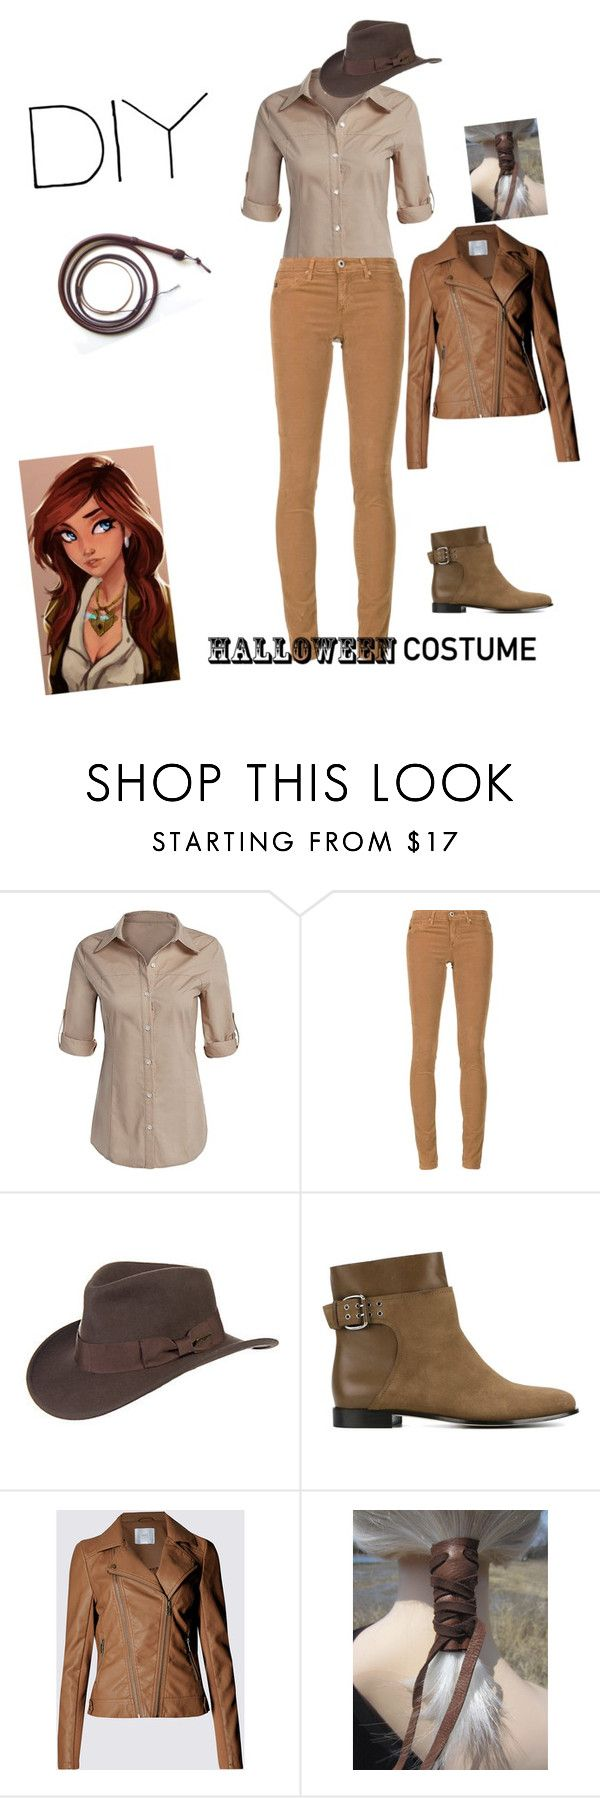 """Diy female version Indiana Jones costume"" by makeuphobbyist ❤ liked on Polyvore featuring AG Adriano Goldschmied, Overland Sheepskin Co., Jimmy Choo, halloweencostume and DIYHalloween"